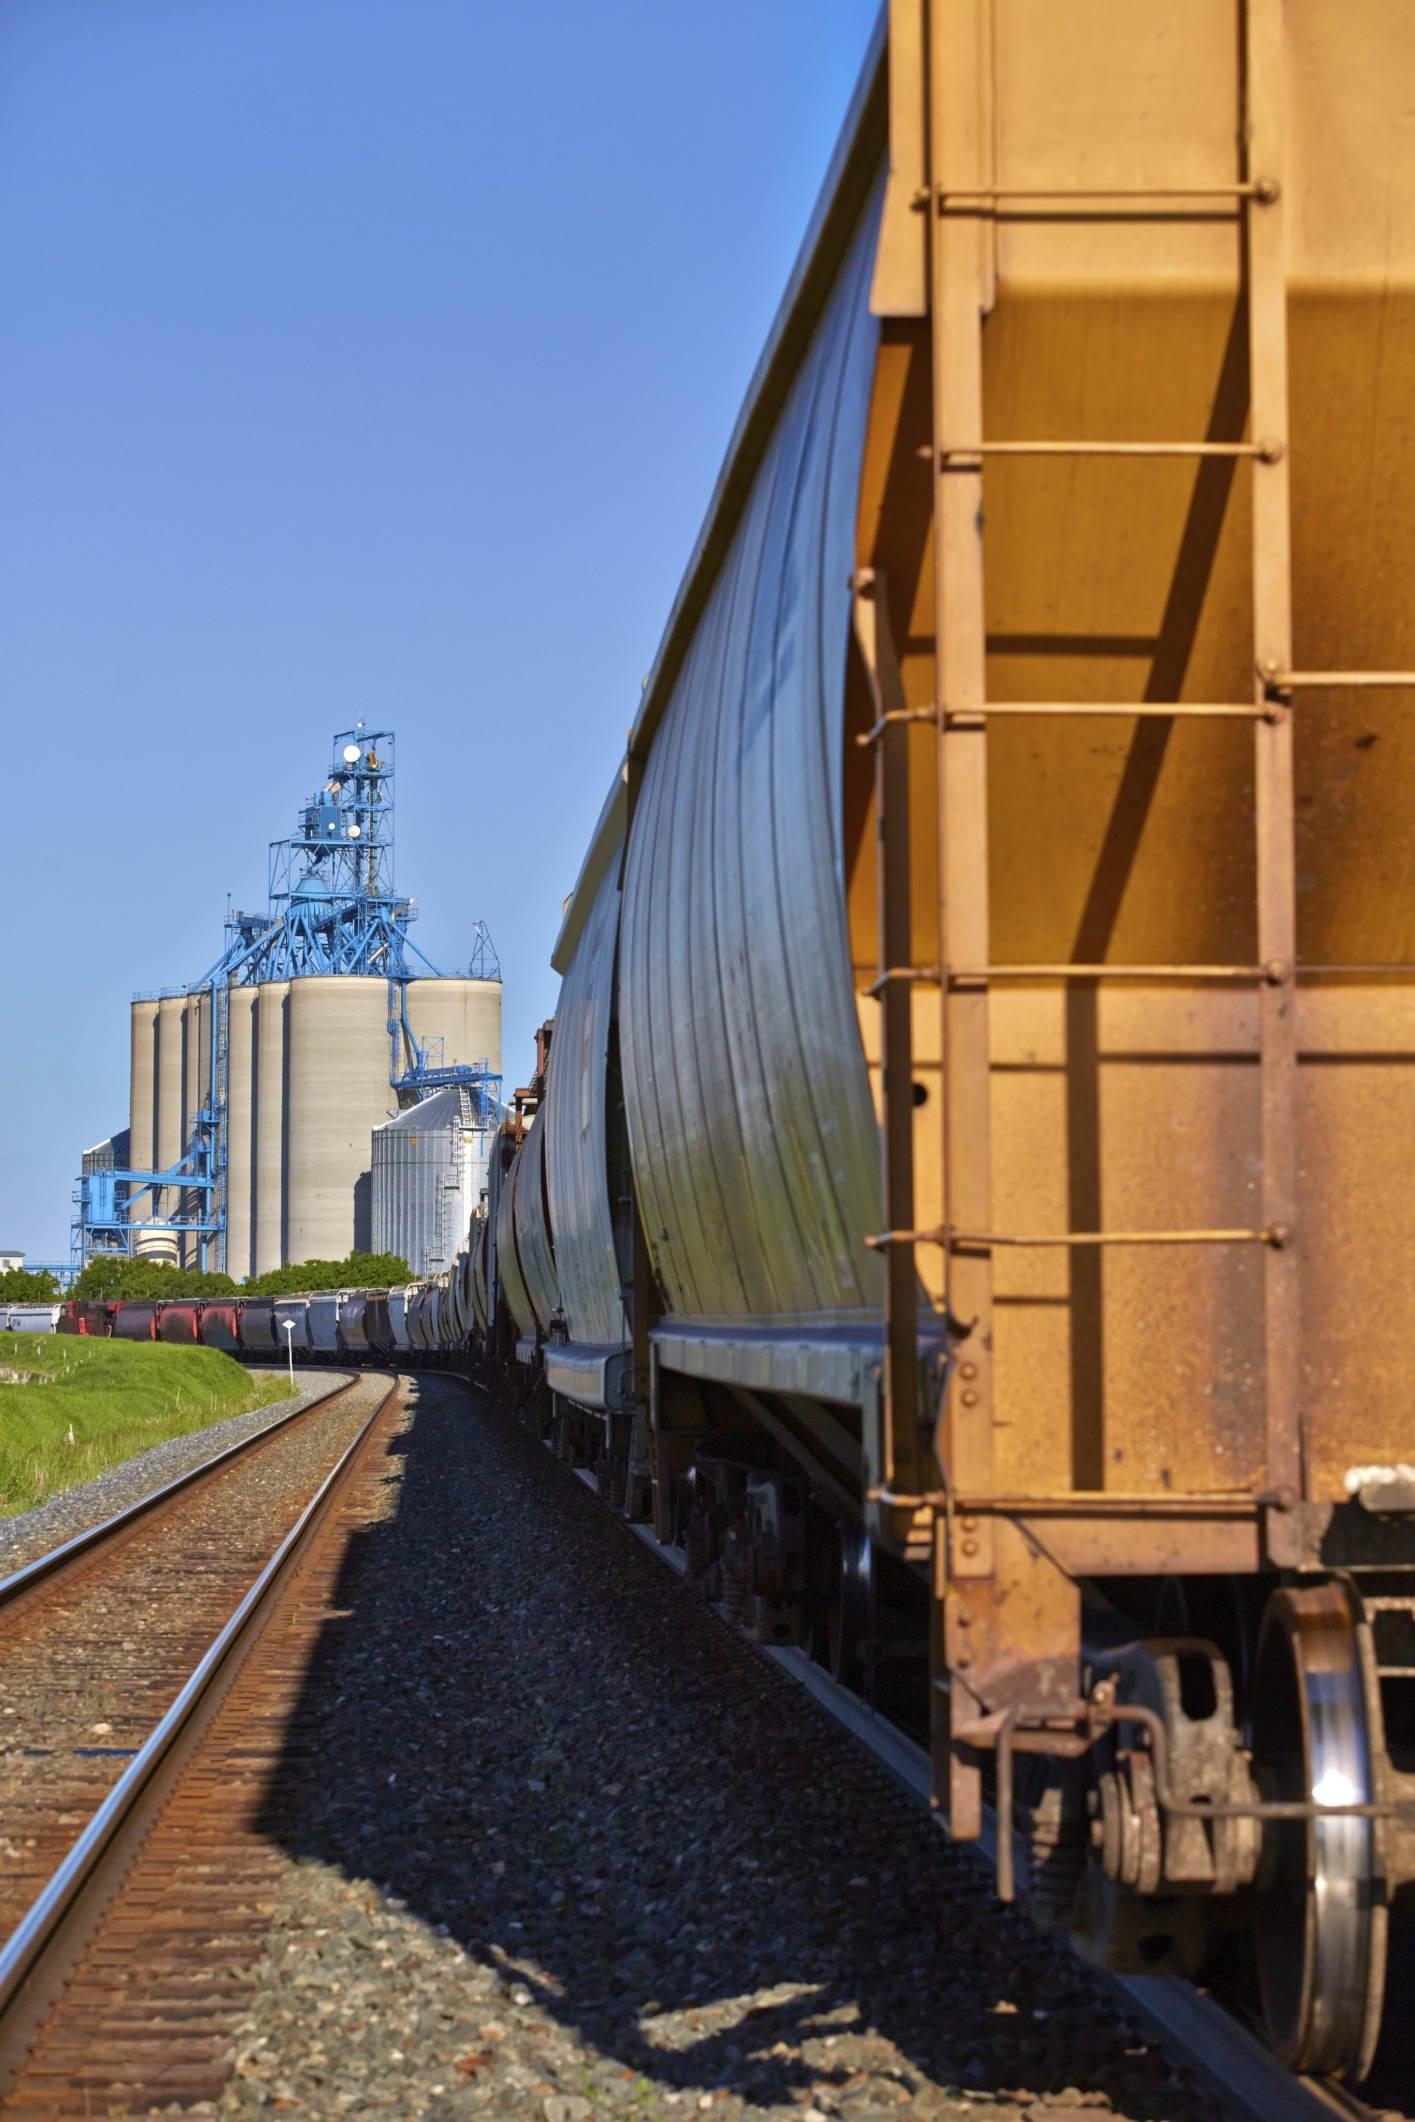 Learn how rail car spotting and orientation affect rail safety.